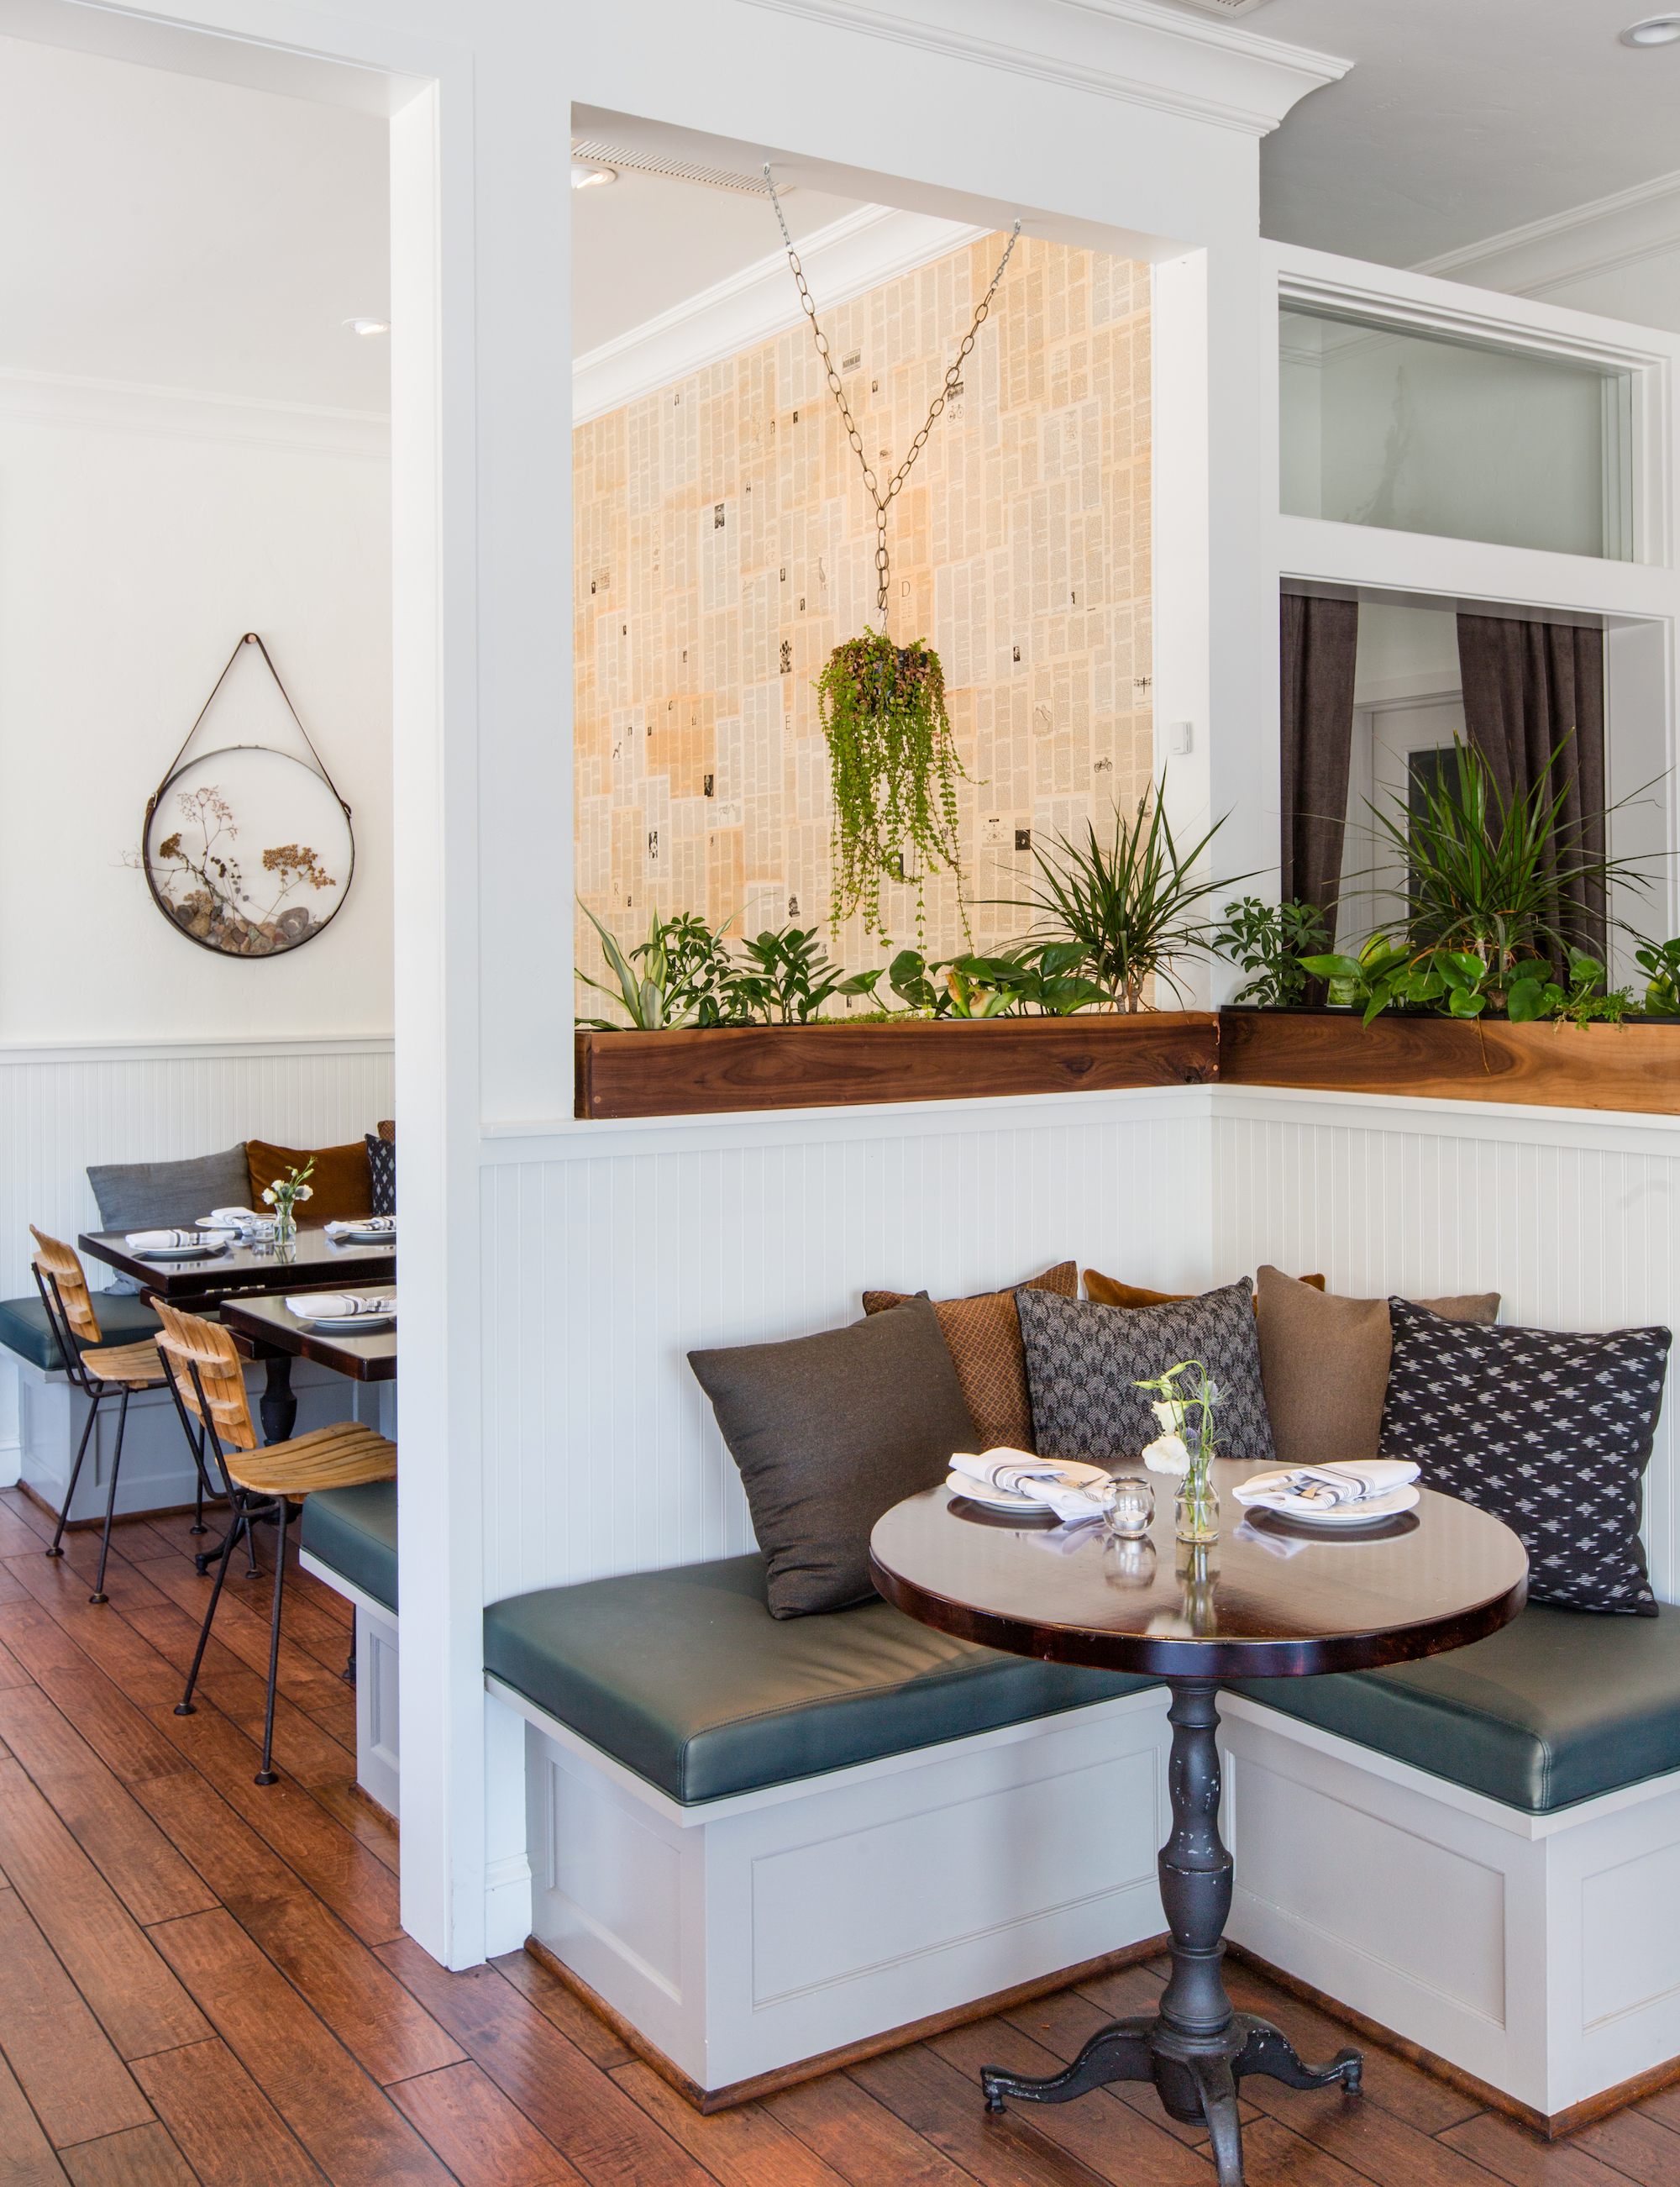 MAIN DINING ROOM   CORNER BANQUETTE    Available for 'SEMI-PRIVATE BUYOUT' option